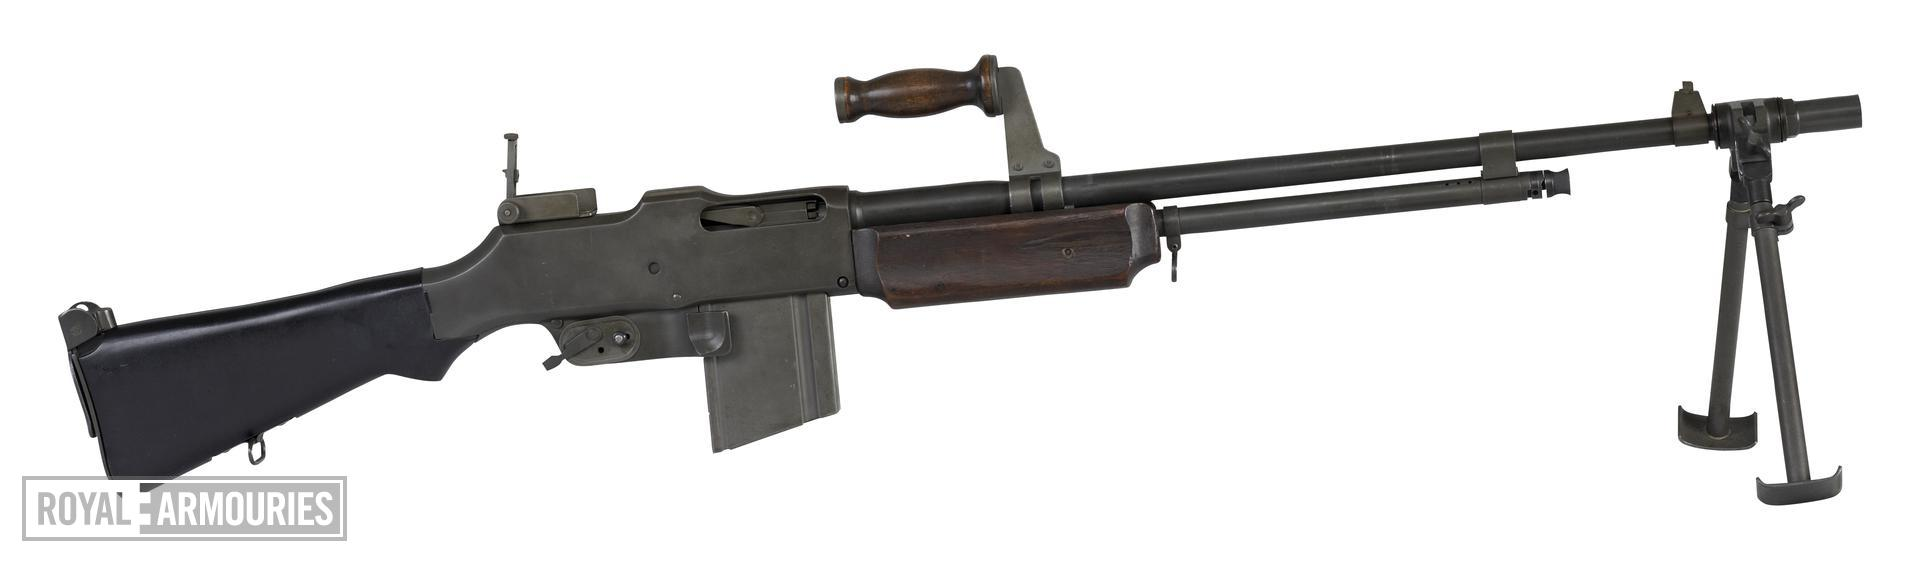 Centrefire automatic light machine gun - Browning Model 1918 A2